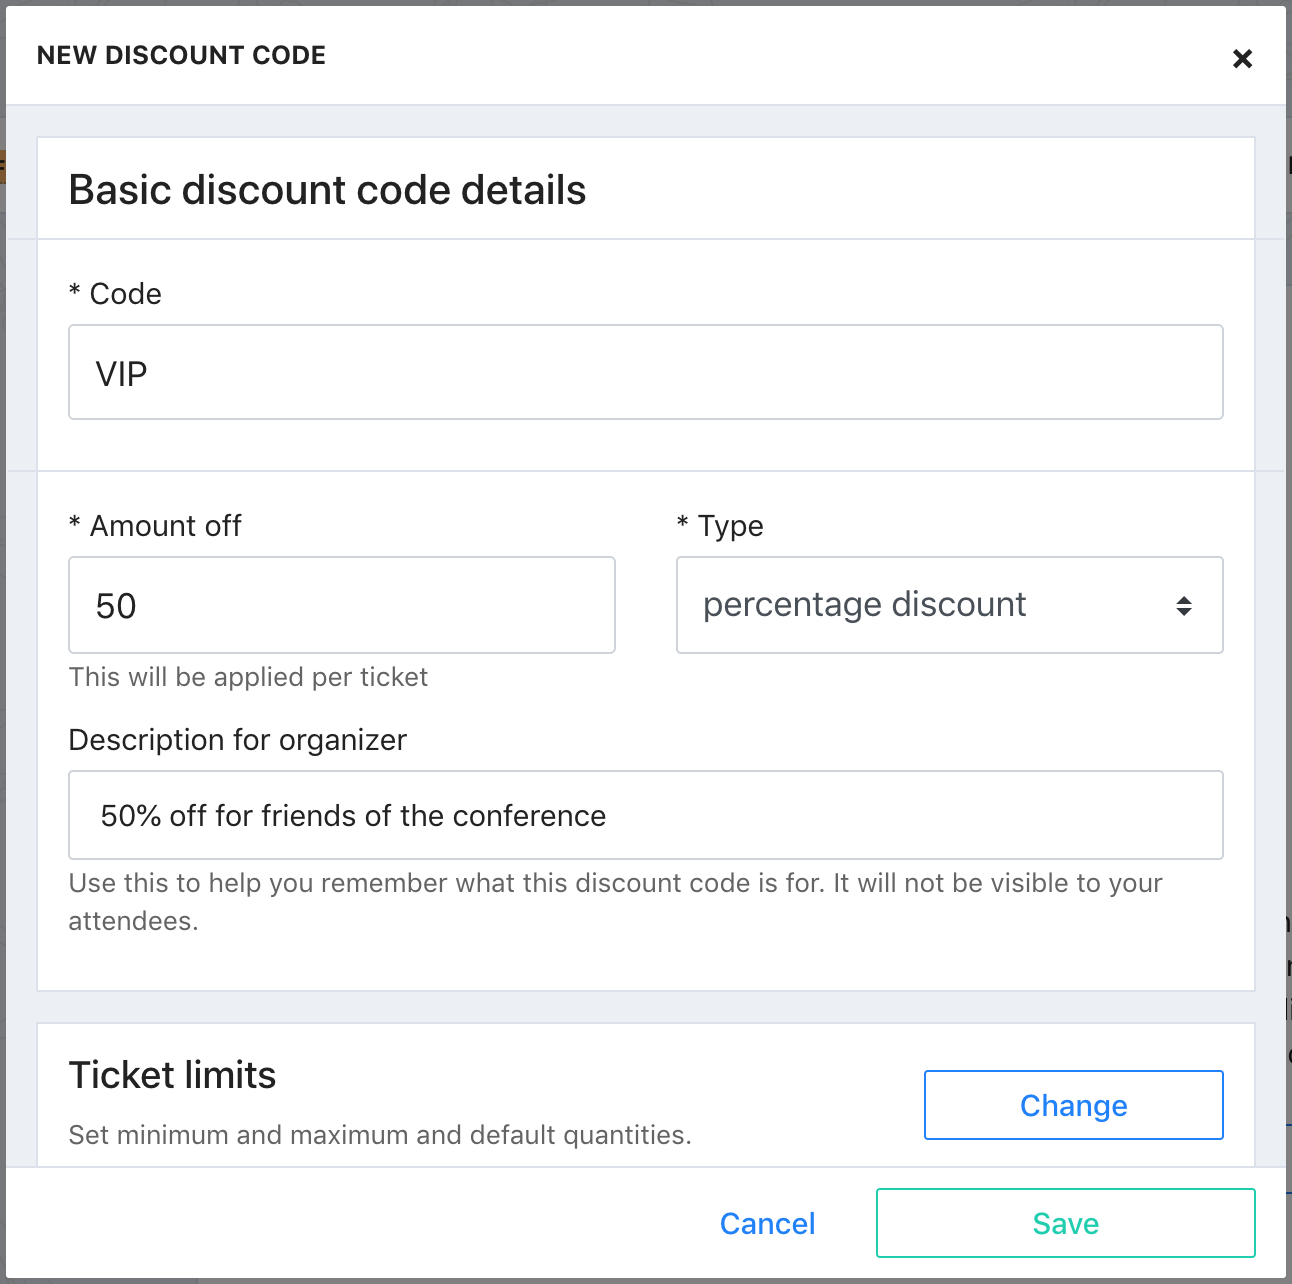 A screenshot of a sample Discount code in Tito. The code name is VIP, the Amount off is 50, and the Type is percentage discount.